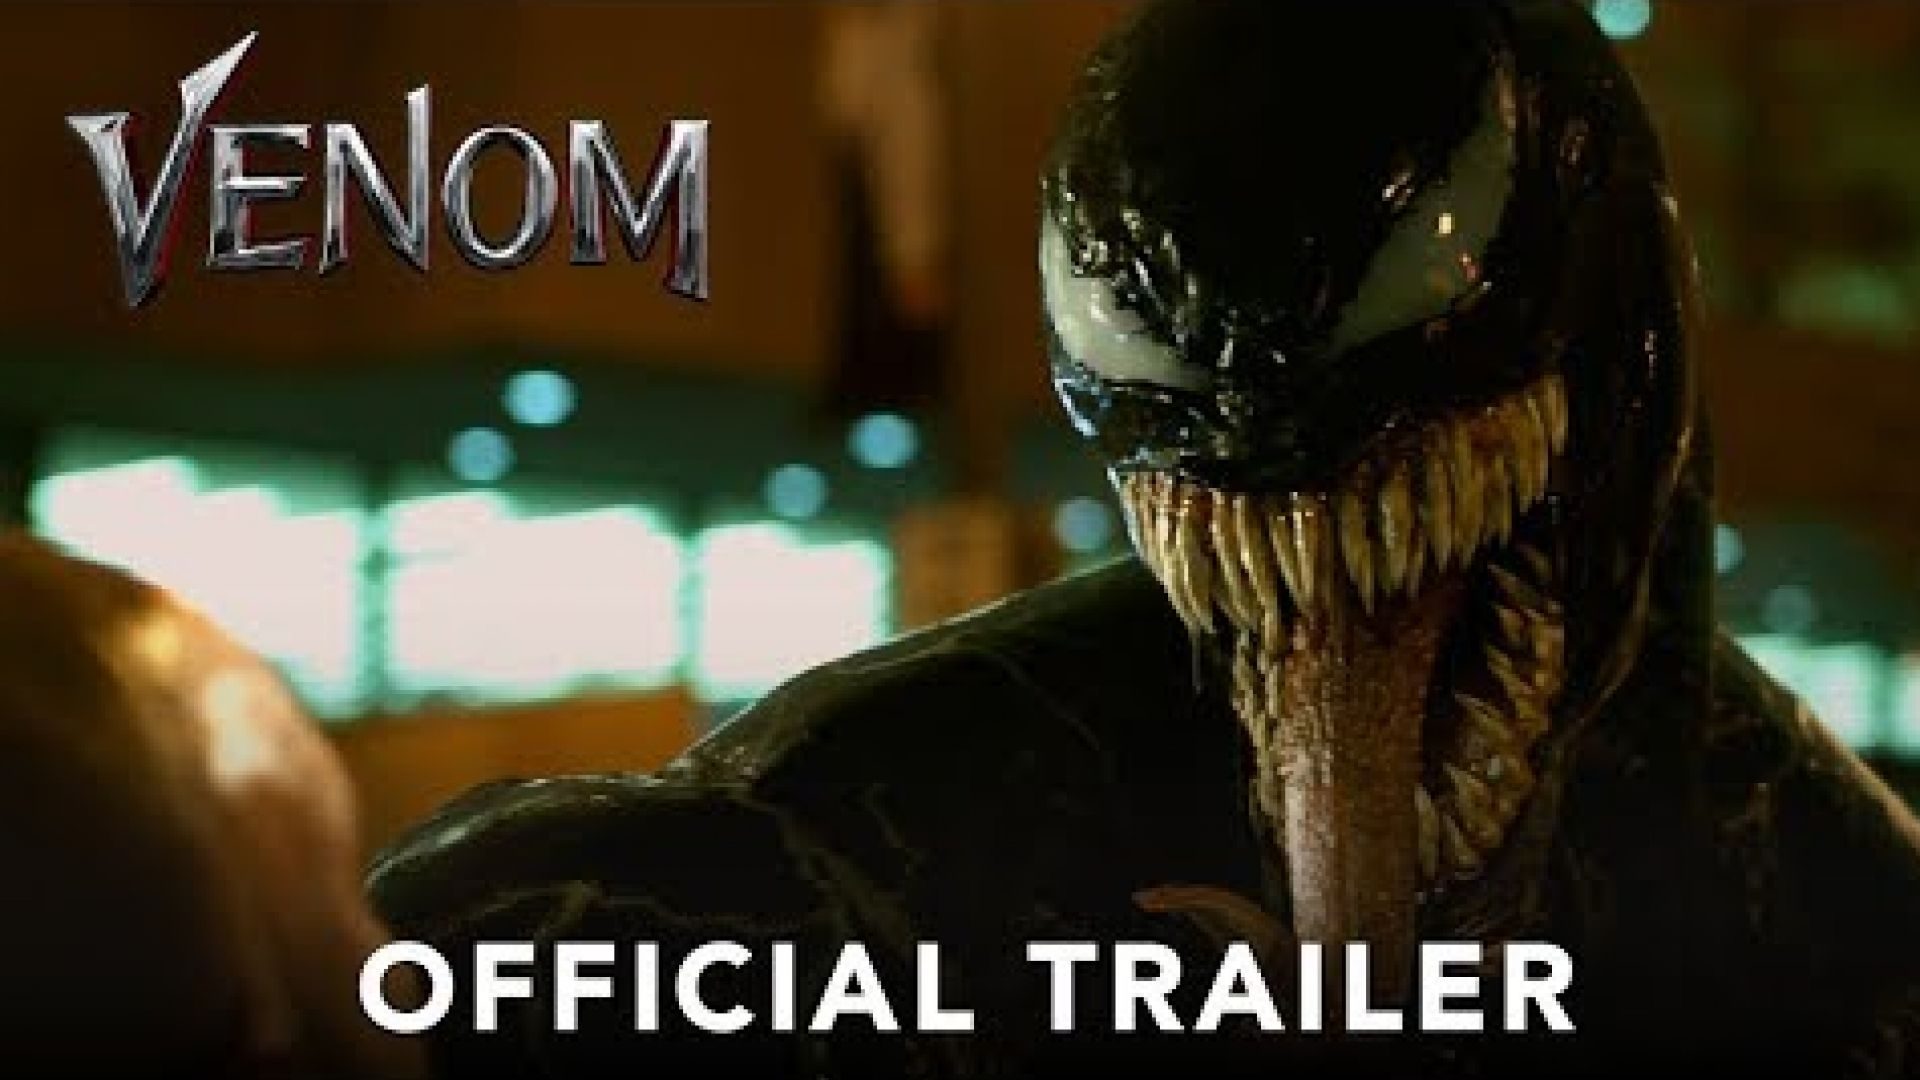 'Venom' Official Trailer - Sony Pictures